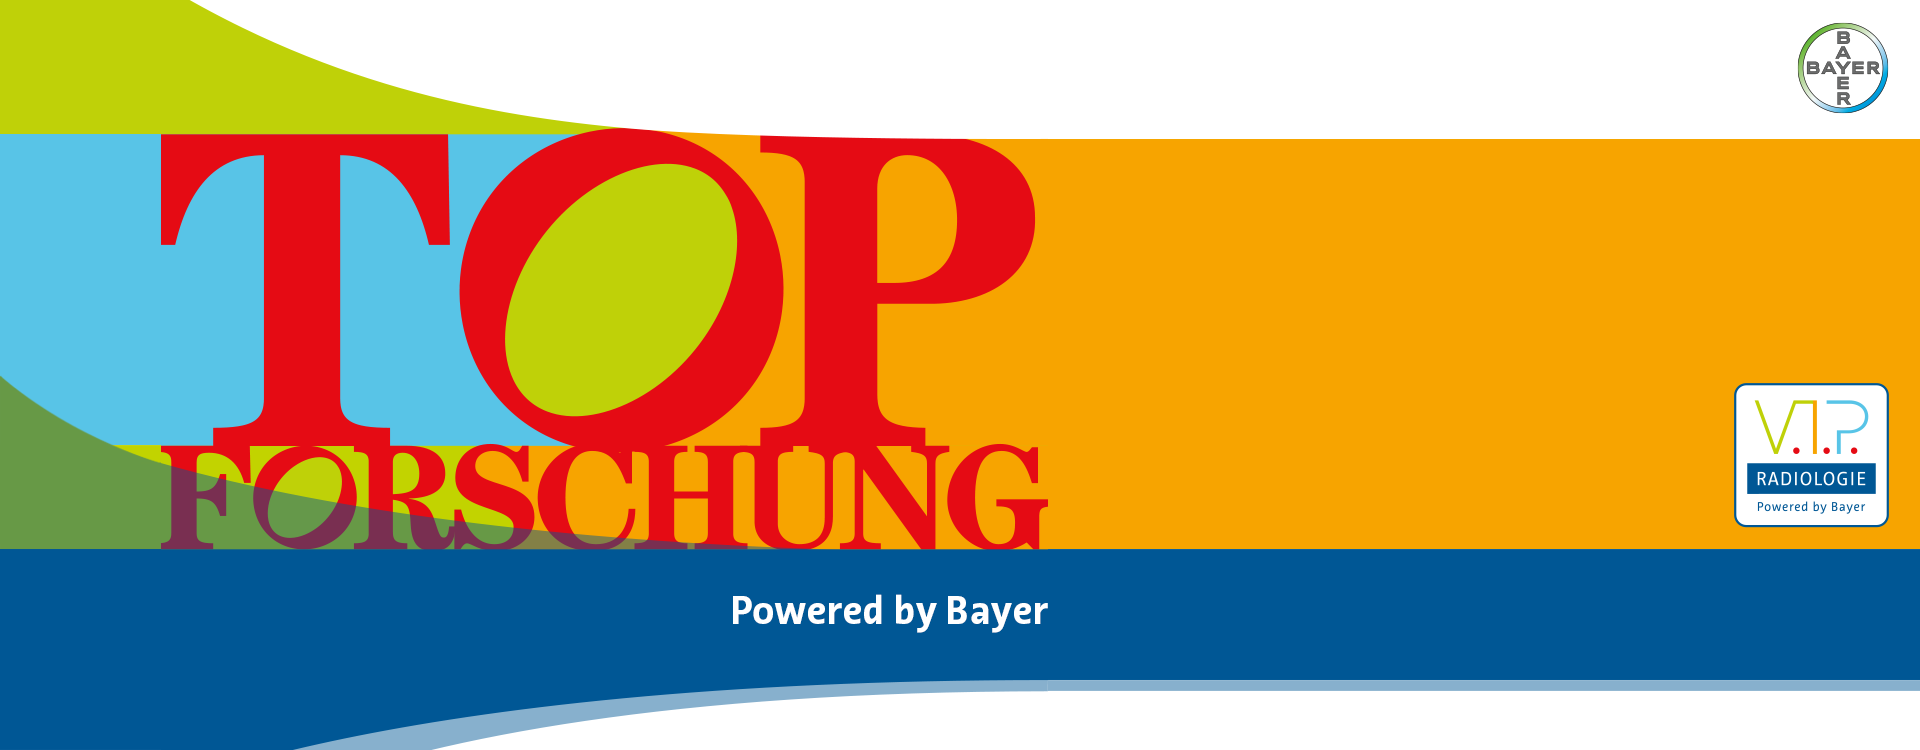 Forschung – Powered by Bayer